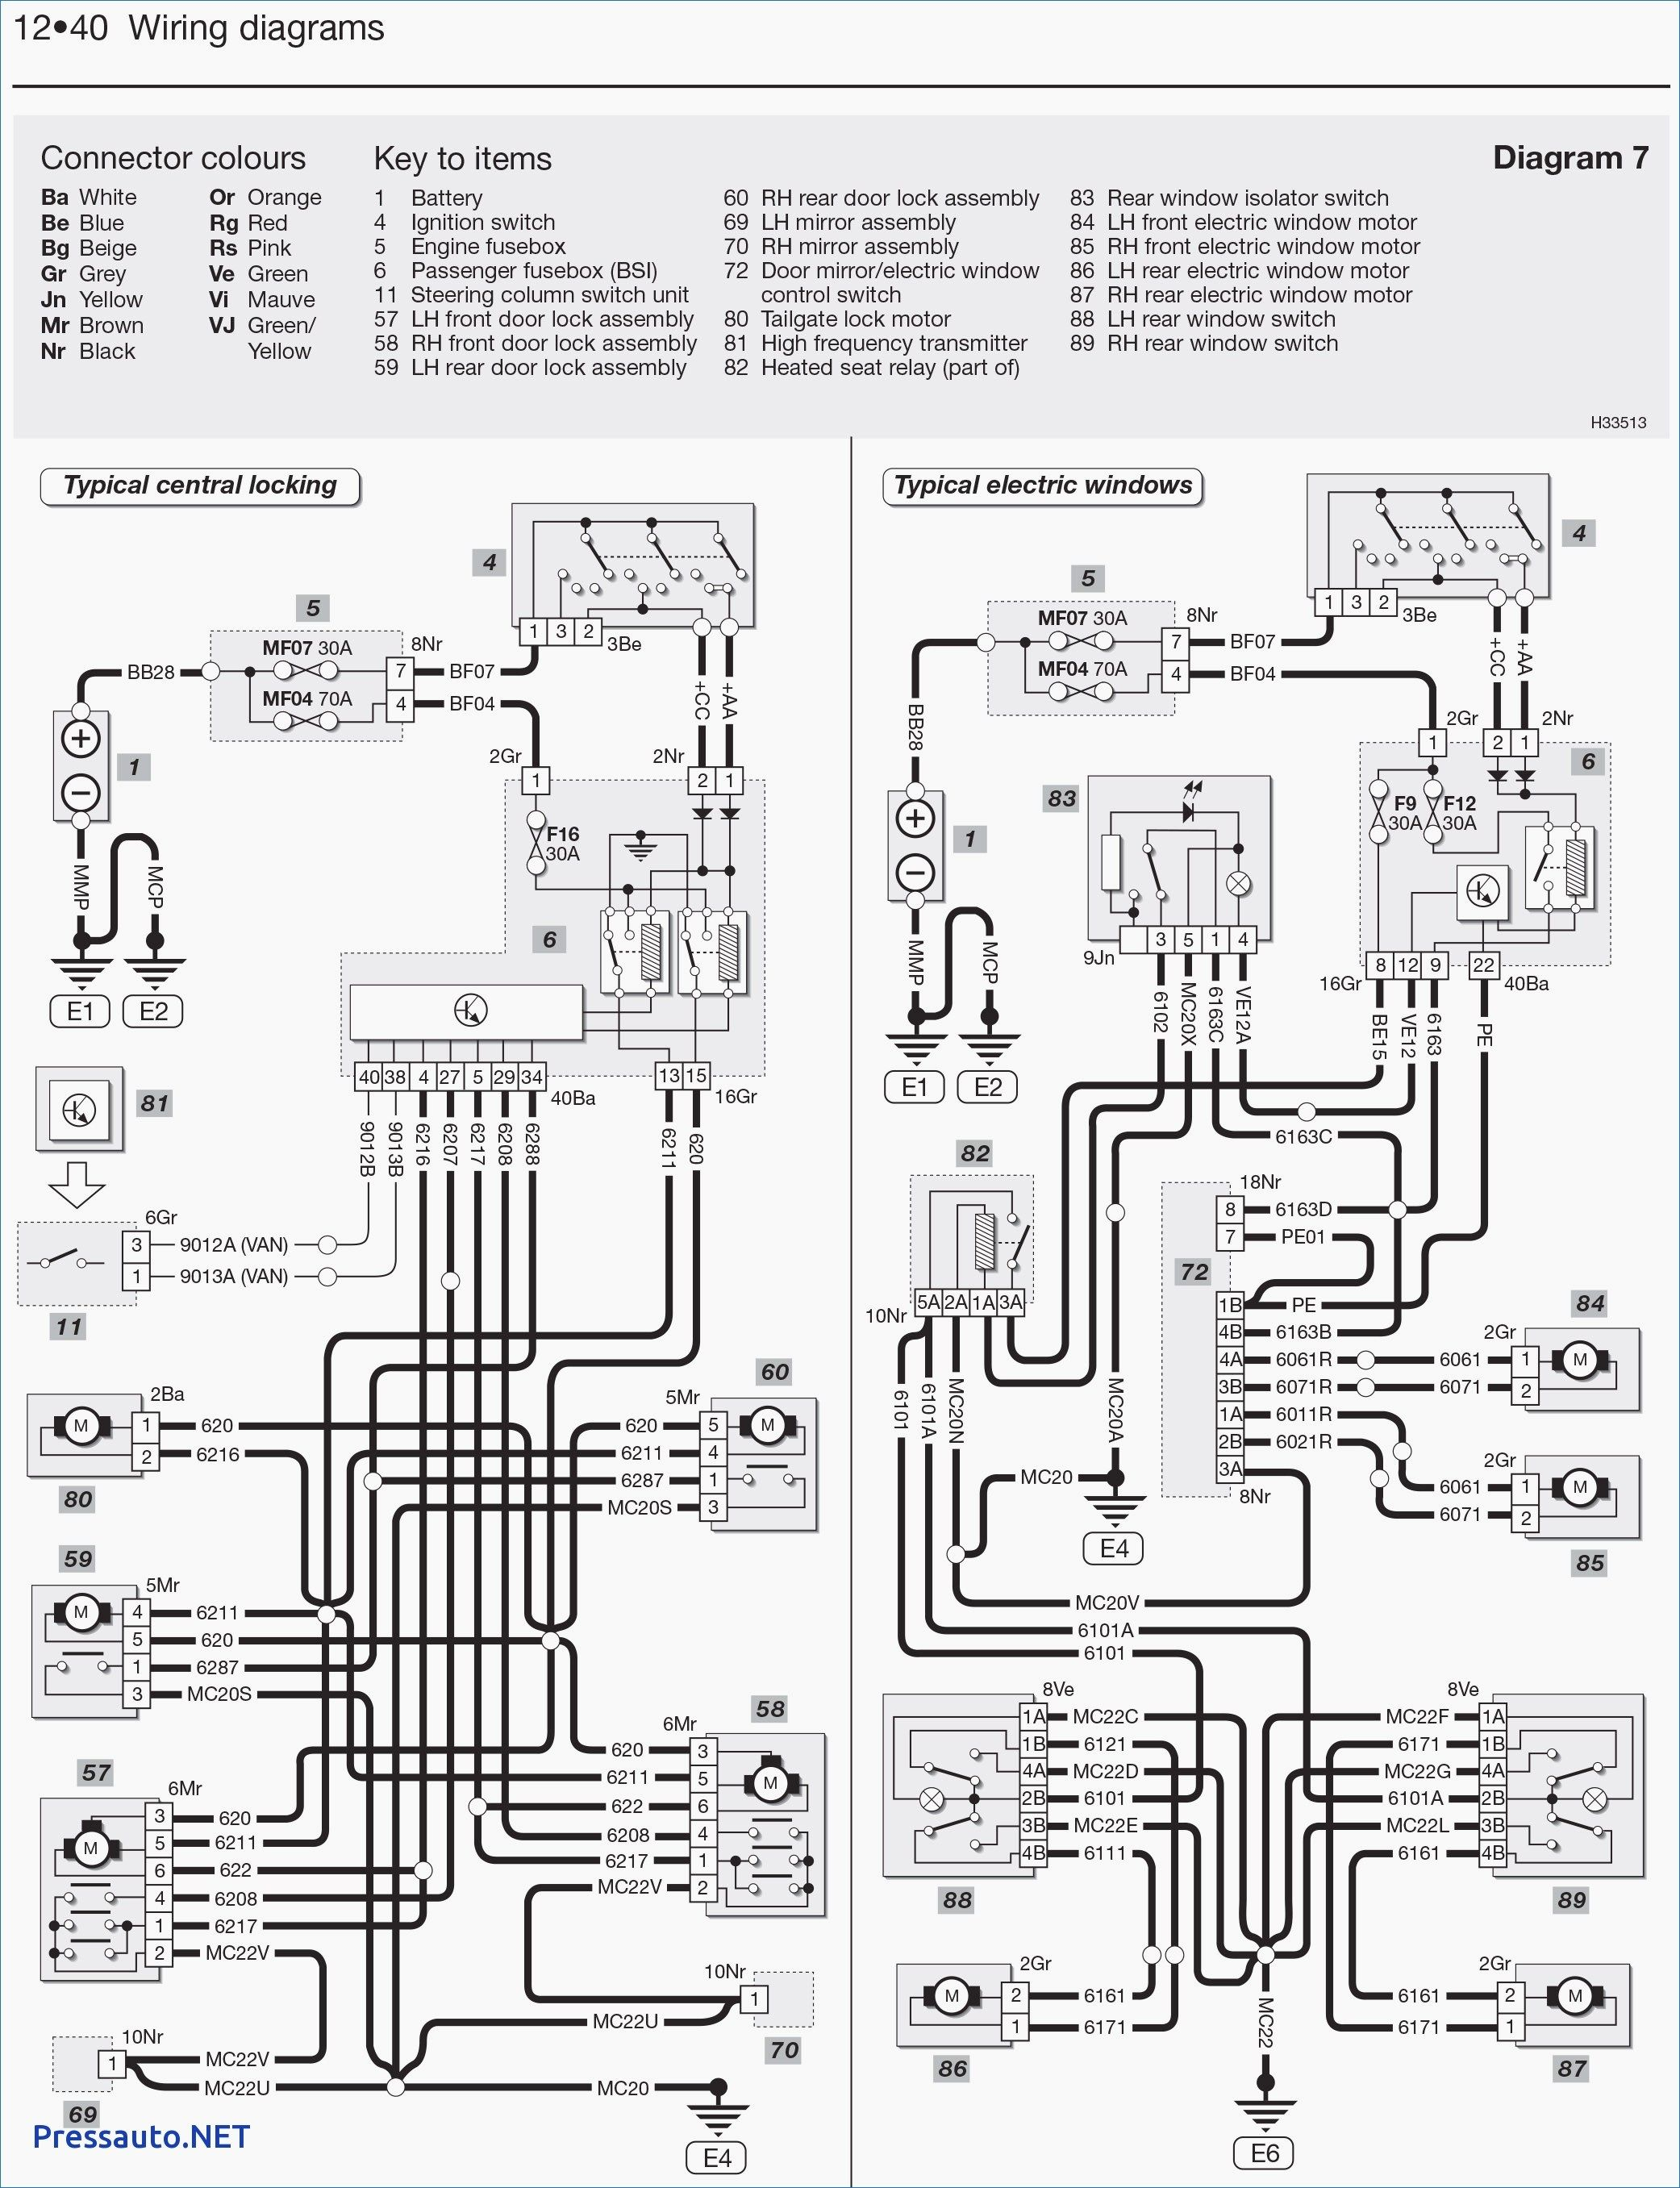 medium resolution of haynes wiring diagram legend wiring diagram diagram wire floorhaynes wiring diagram legend wiring diagram